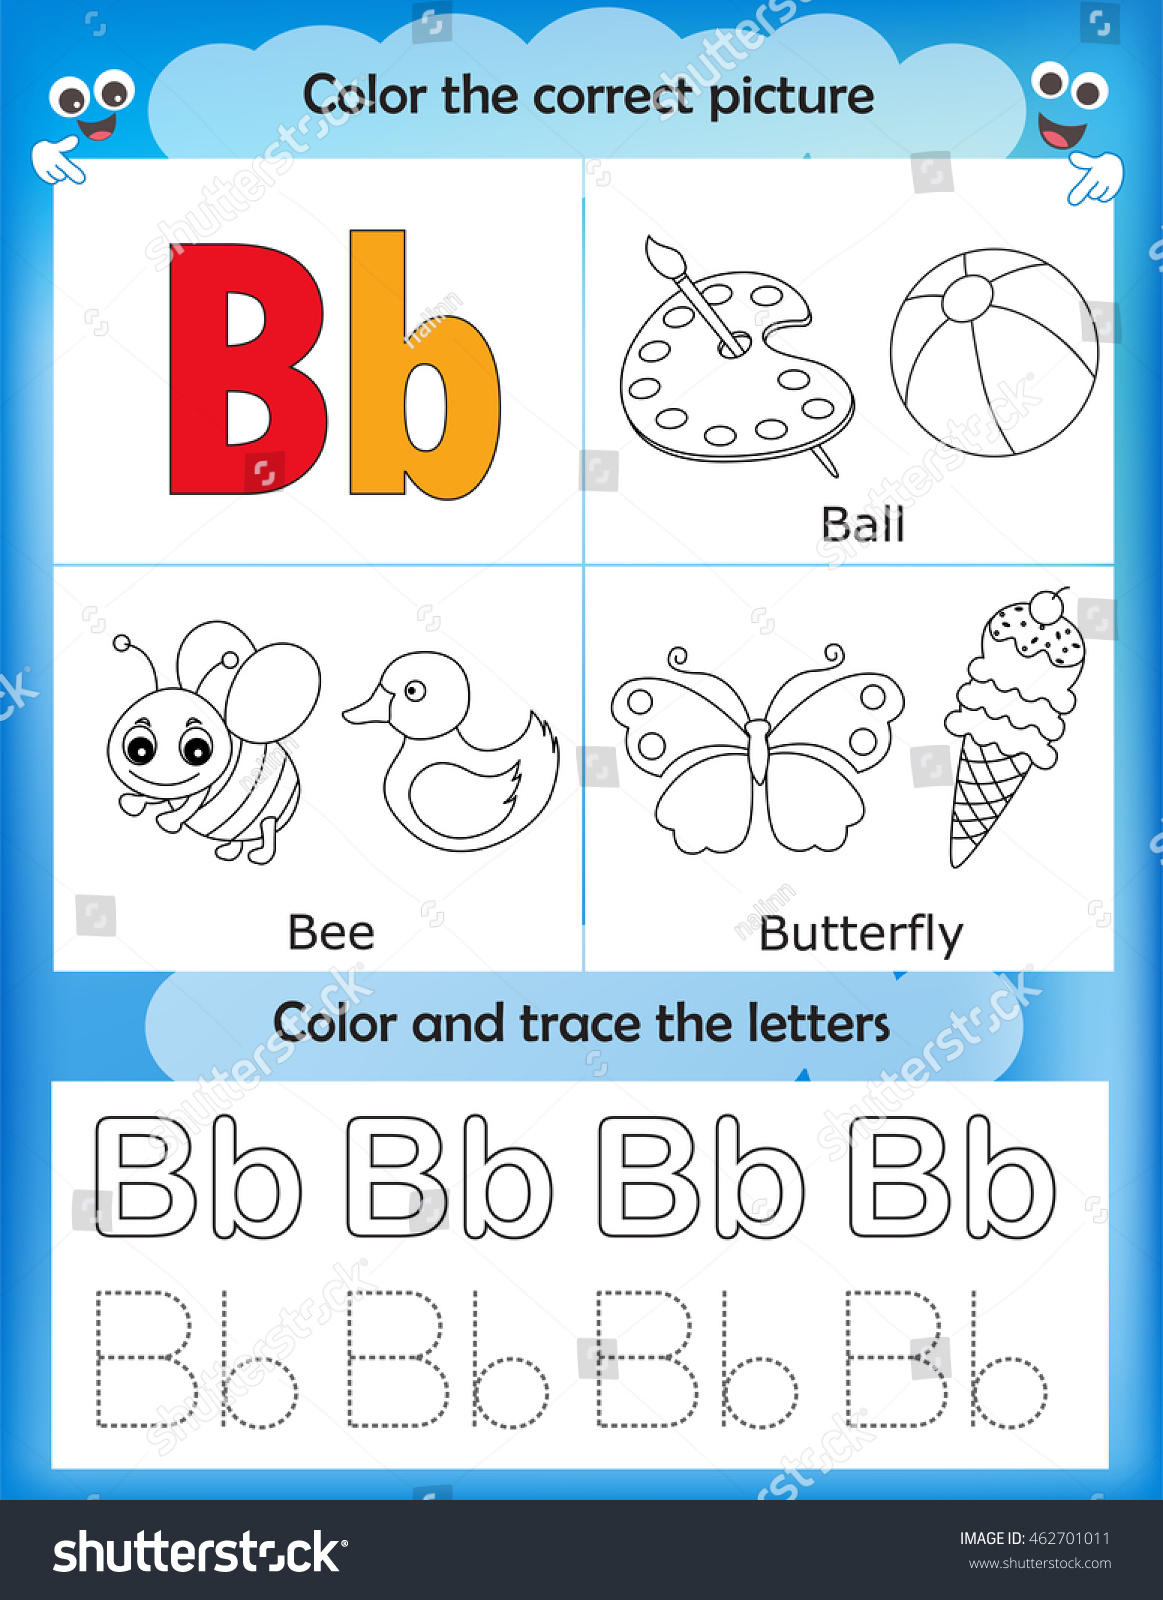 Alphabet Learning Letters Coloring Graphics Printable Worksheet For Preschool Kindergarten Kids Letter B